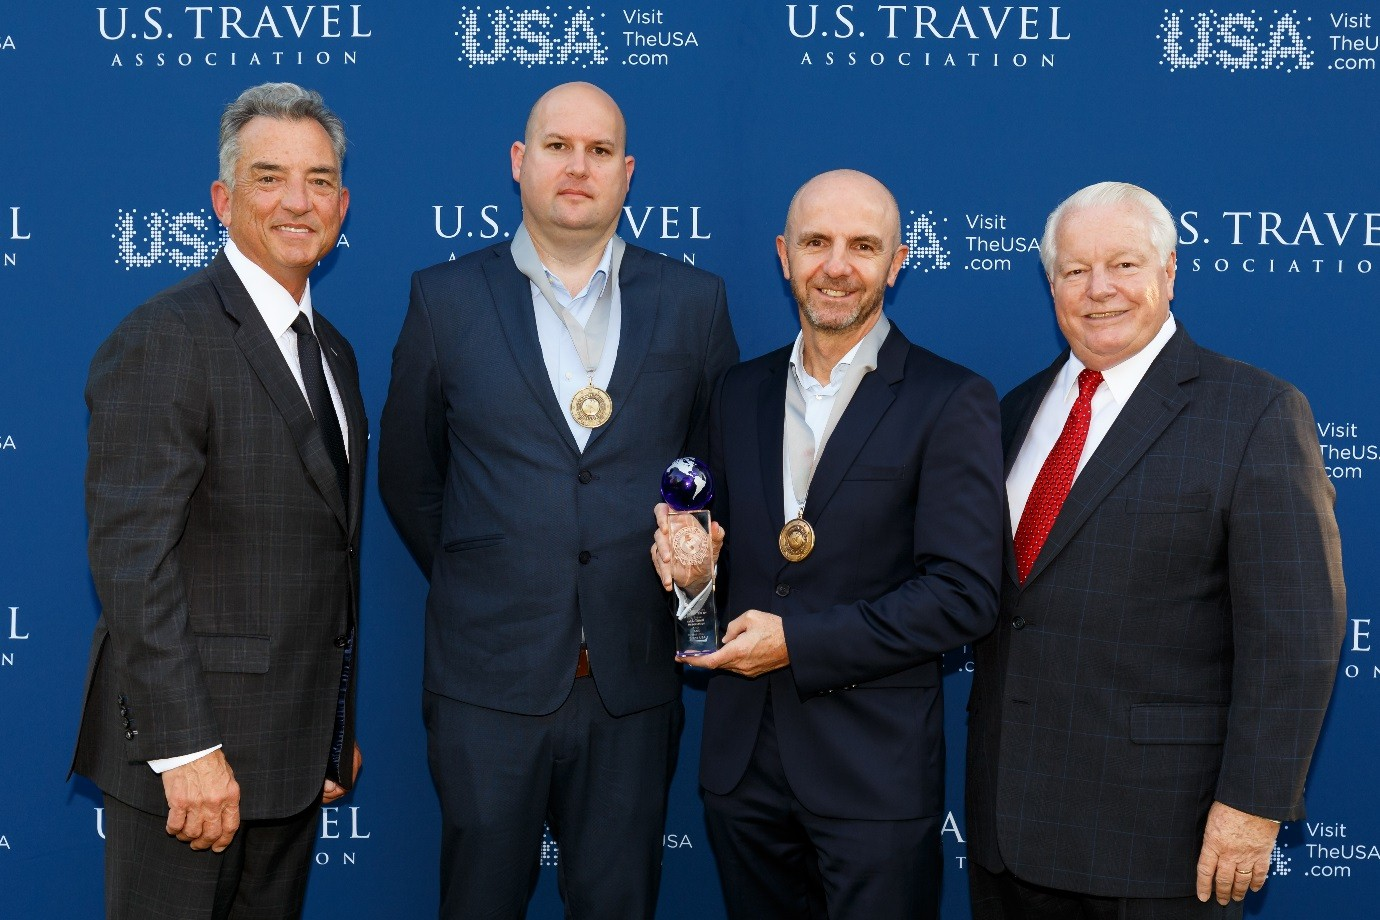 L-R: Christopher Thompson - President and CEO of Brand USA, Mark Brooker - Destination & Procurement Manager, Helloworld Travel Limited, Joe McCormack - GM Procurement, Helloworld Travel Limited, and Roger Dow- President and CEO of US Travel Association.